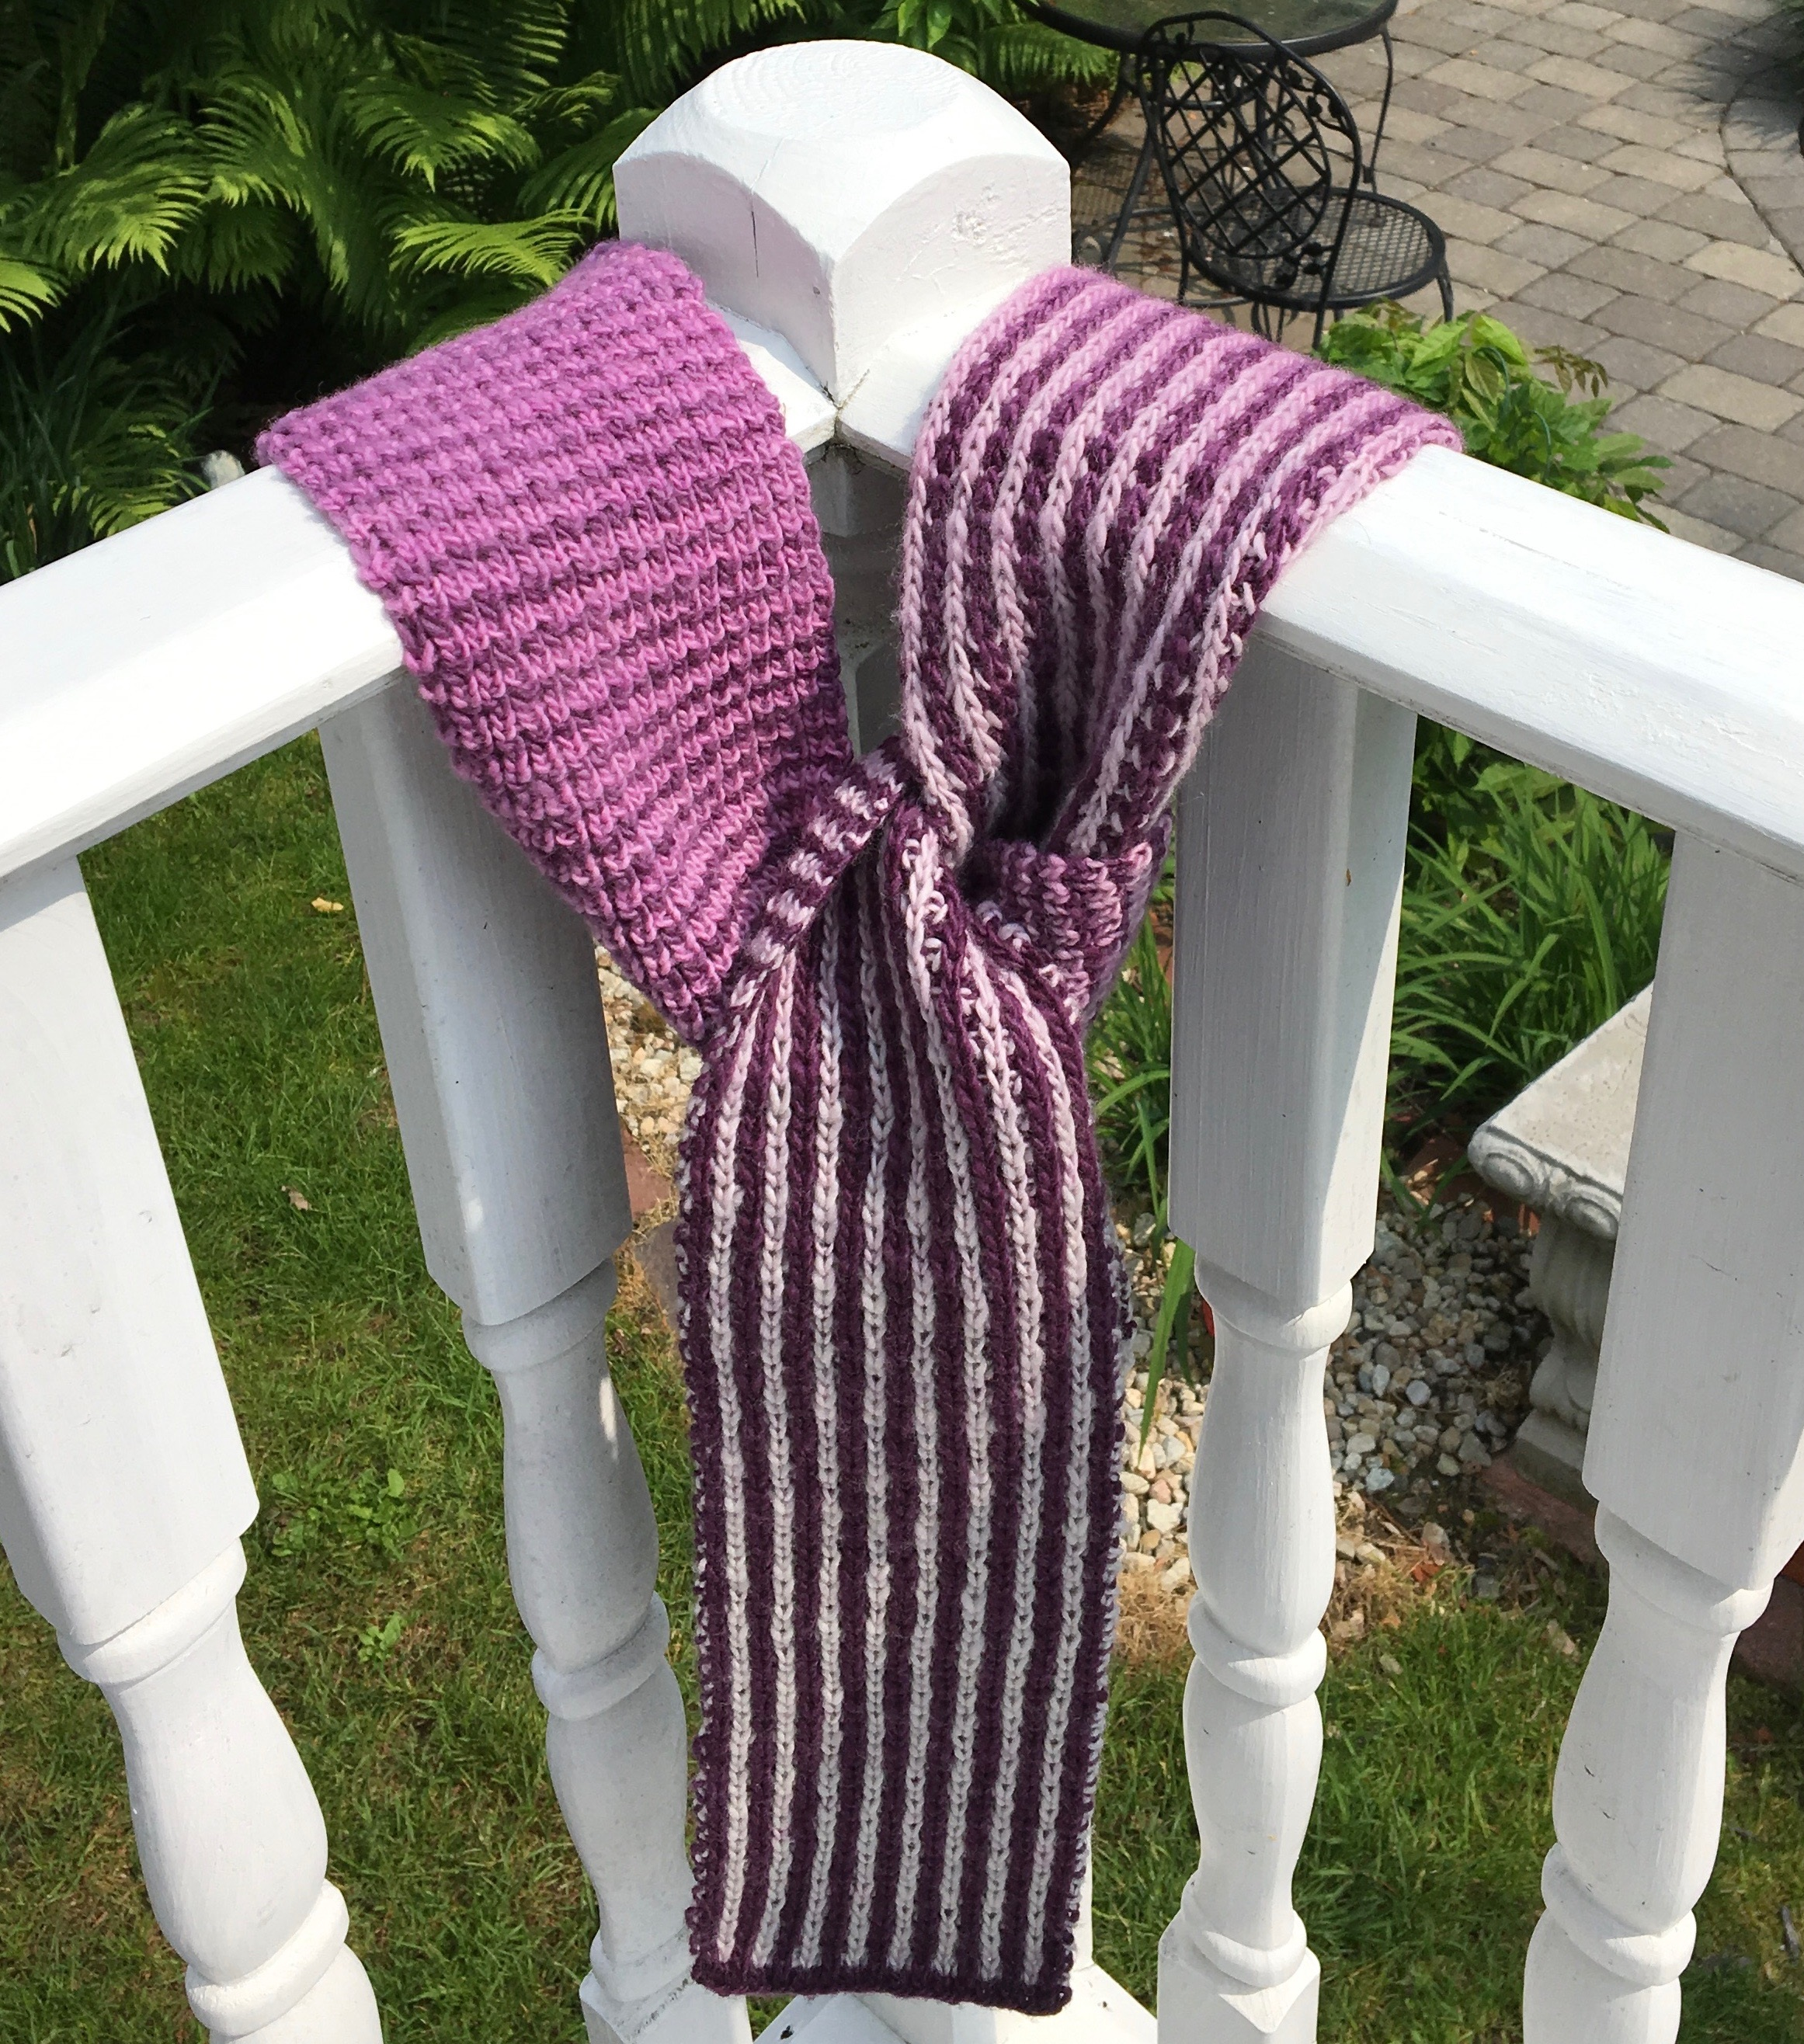 Two Color Double Knitting - Instructor: Alice JordanDate: Sunday, Sept 8, 9:00-12:00 (Half Day Class)Cost: $45Maximum: 6 spotsSome experience necessary.